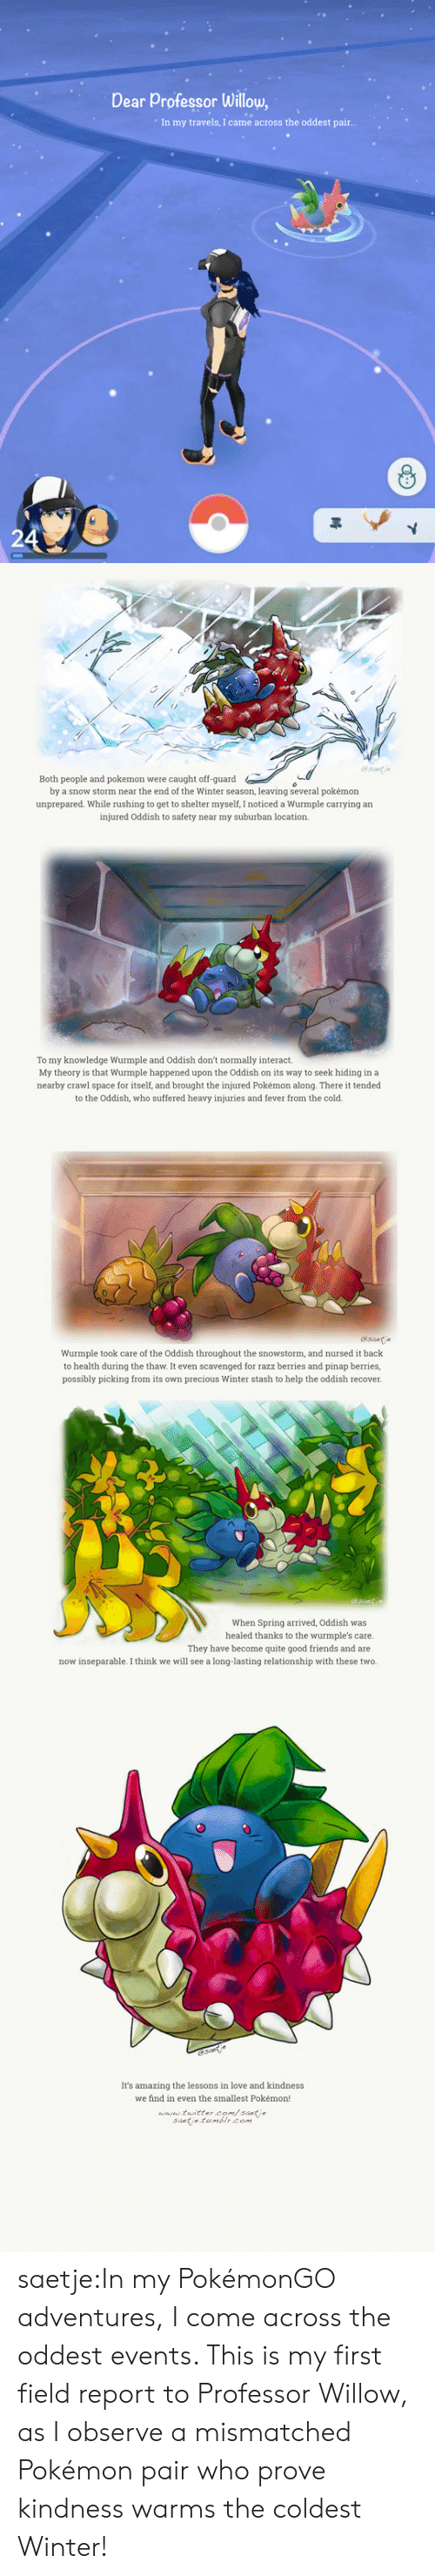 Pokemongo: Dear Professor Willow,  In my travels, I came across the oddest pair..   (s  esntde  Both people and pokemon were caught off-guard  by a snow storm near the end of the Winter season, leaving several pokémon  unprepared. While rushing to get to shelter myself, I noticed a Wurmple carrying an  injured Oddish to safety near my suburban location.  To my knowledge Wurmple and Oddish don't normally interact.  My theory is that Wurmple happened upon the Oddish on its way to seek hiding in a  nearby crawl space for itself, and brought the injured Pokémon along. There it tended  to the Oddish, who suffered heavy injuries and fever from the cold.   Wurmple took care of the Oddish throughout the snowstorm, and nursed it back  to health during the thaw. It even scavenged for razz berries and pinap berries,  possibly picking from its own precious Winter stash to help the oddish recover.  When Spring arrived, Oddish was  healed thanks to the wurmple's care.  They have become quite good friends and are  now inseparable. I think we will see a long-lasting relationship with these two.   It's amazing the lessons in love and kindnes  we find in even the smallest Pokémon!  www tuittercom/santie  saetie tumblr.com saetje:In my PokémonGO adventures, I come across the oddest events. This is my first field report to Professor Willow, as I observe a mismatched Pokémon pair who prove kindness warms the coldest Winter!